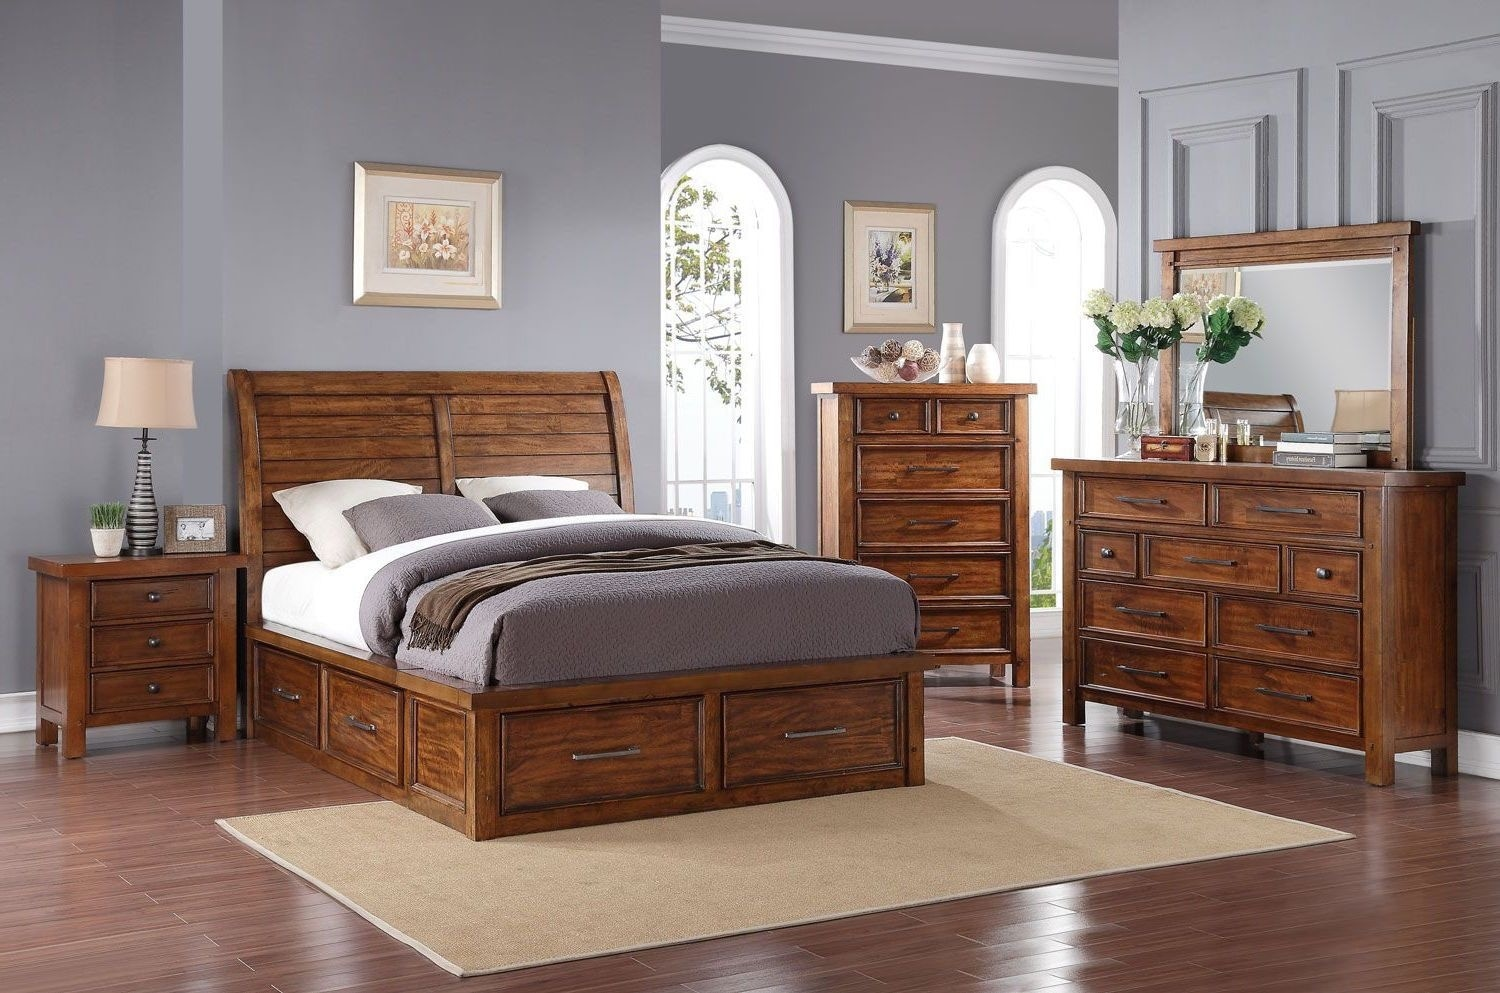 Bedroom Furniture - Sonoma 6-Piece Queen Storage Bedroom Package – Medium Brown